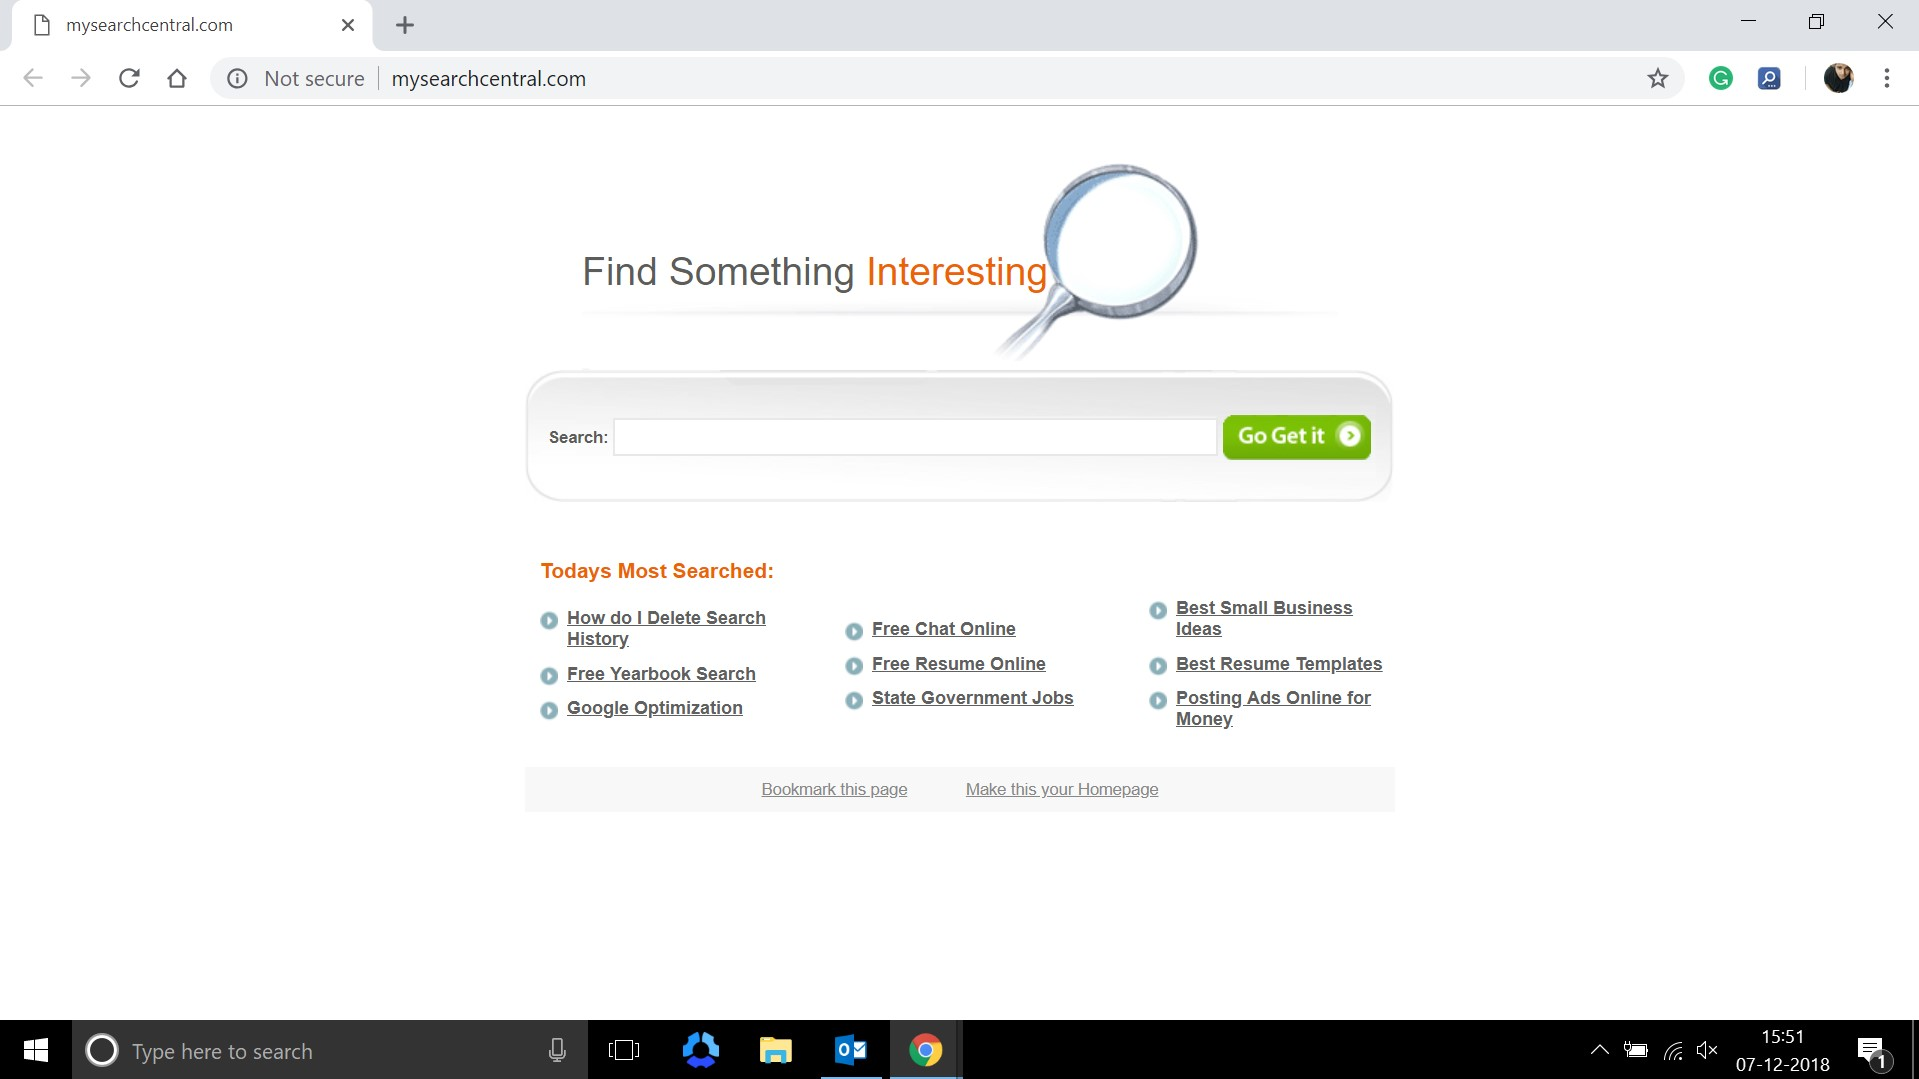 How to remove Mysearchcentral.com Hijacker